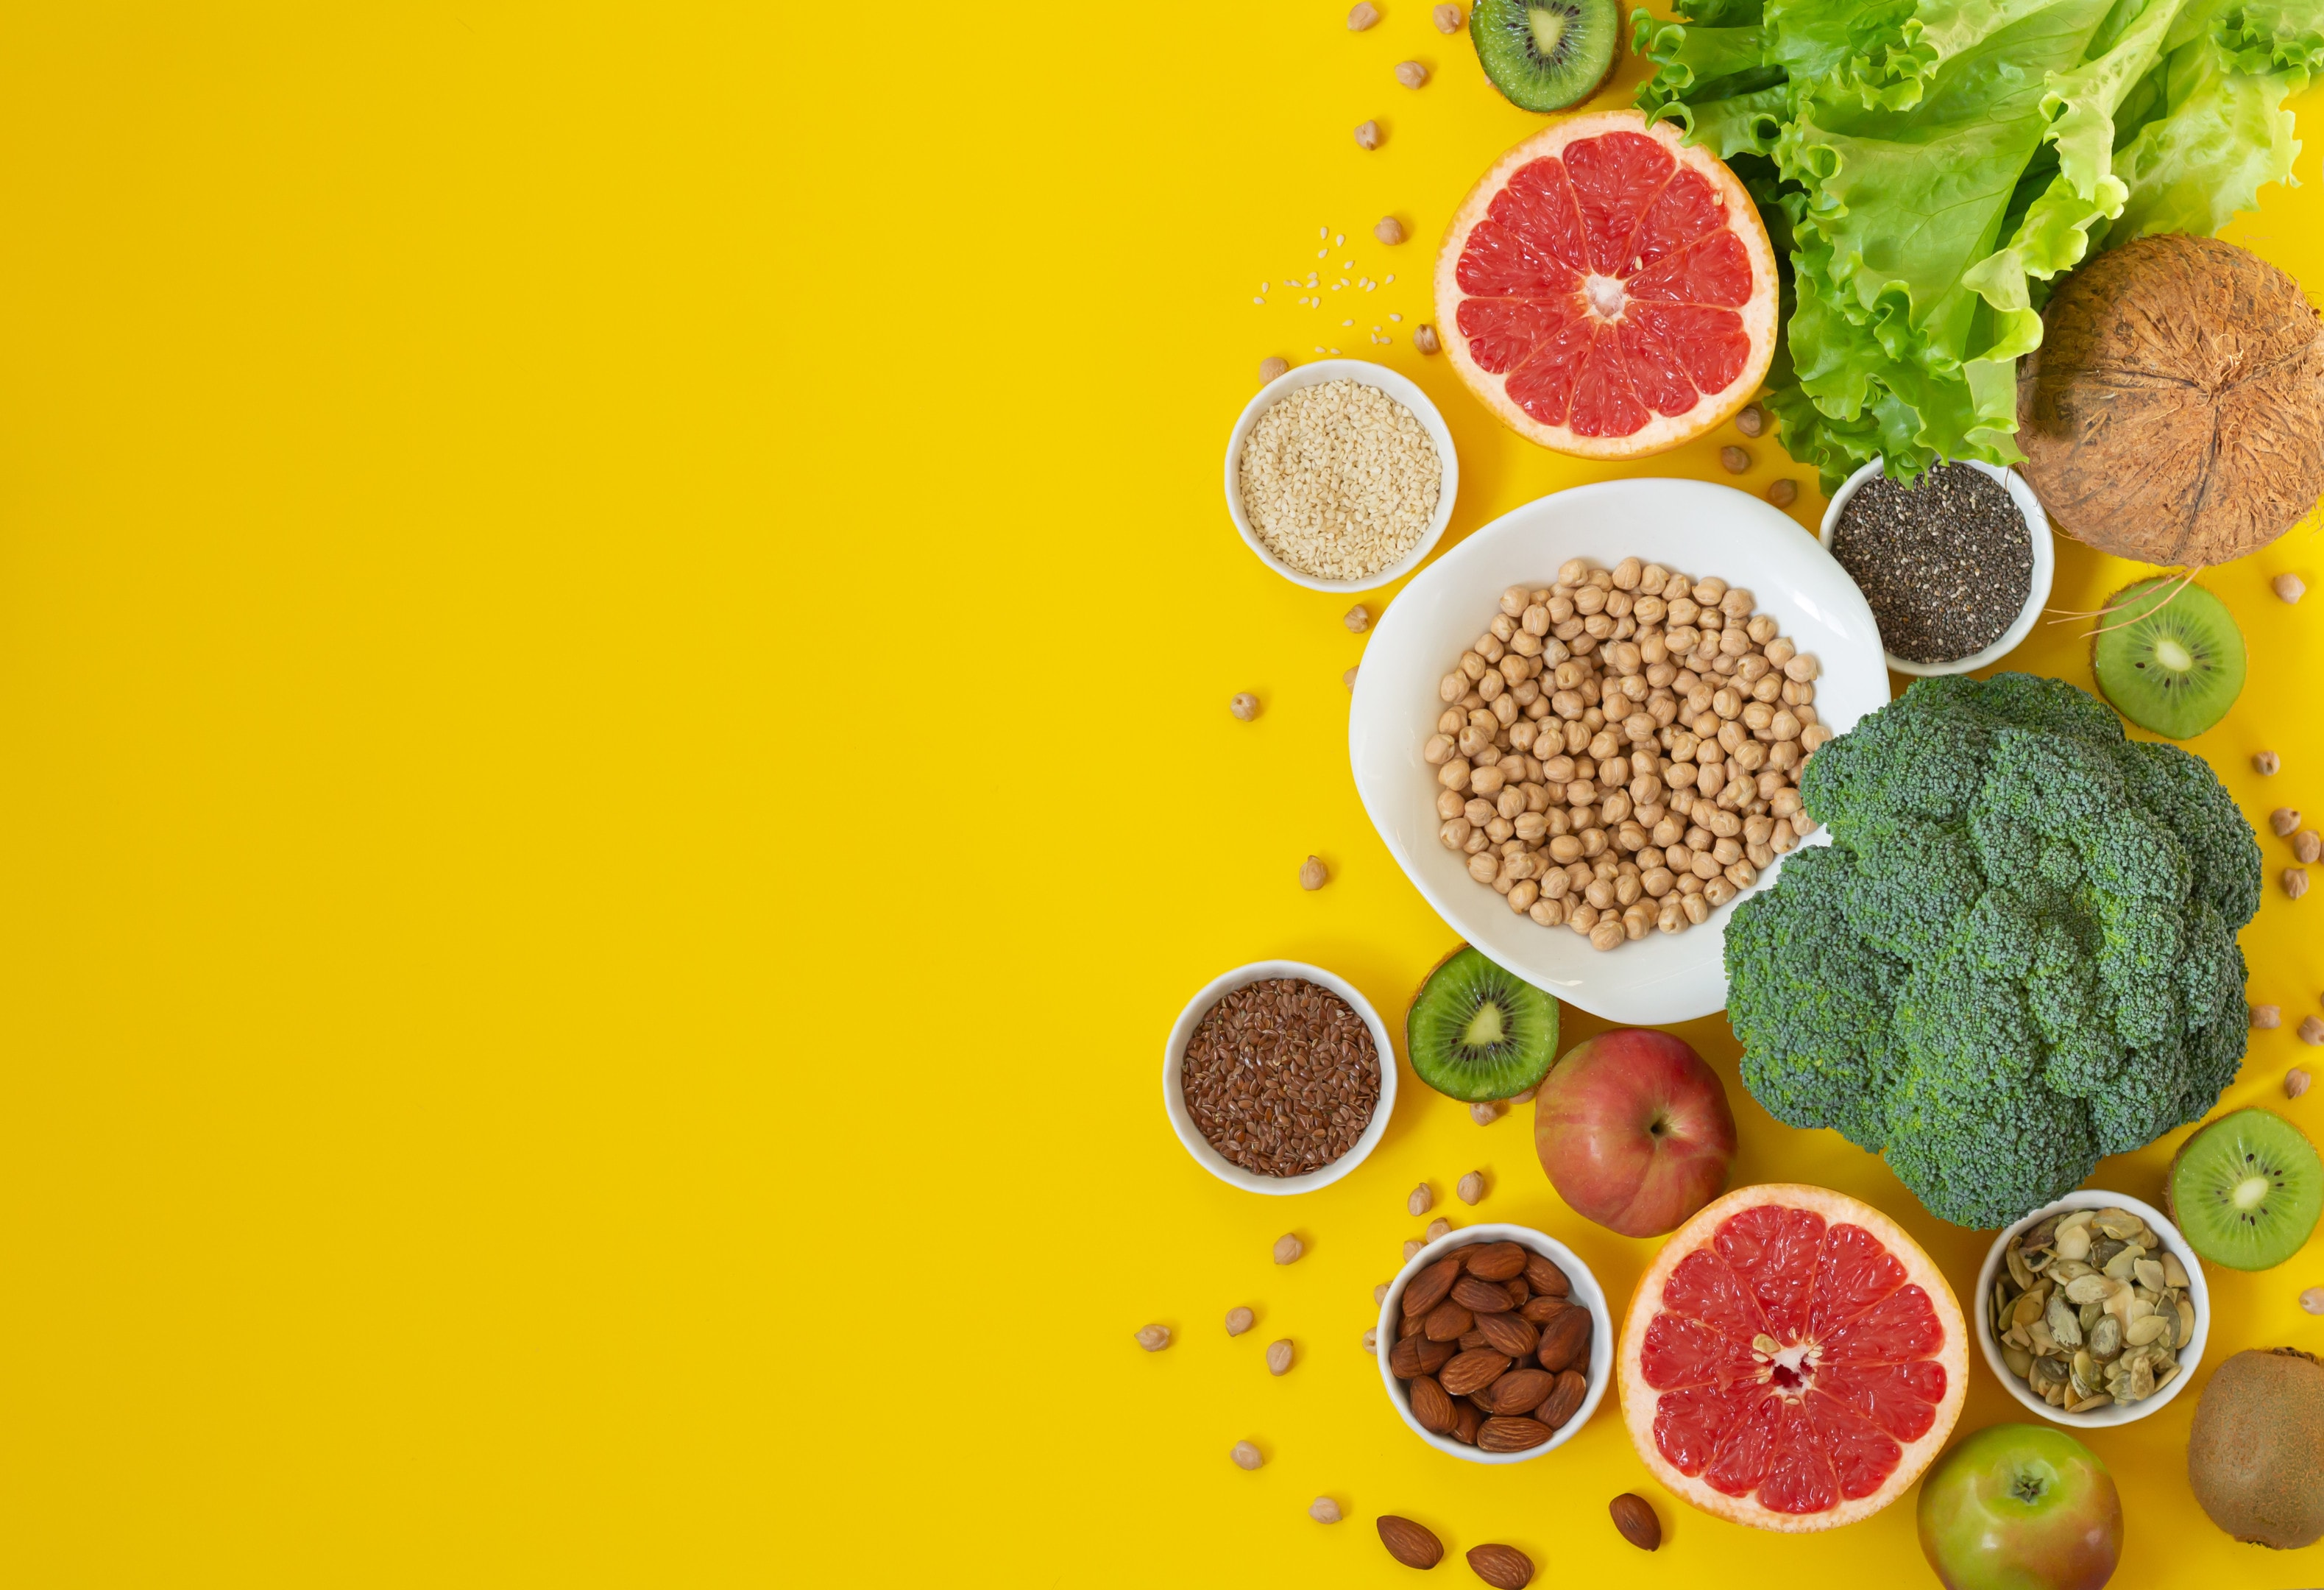 Food rich in antioxidants and fiber on yellow background